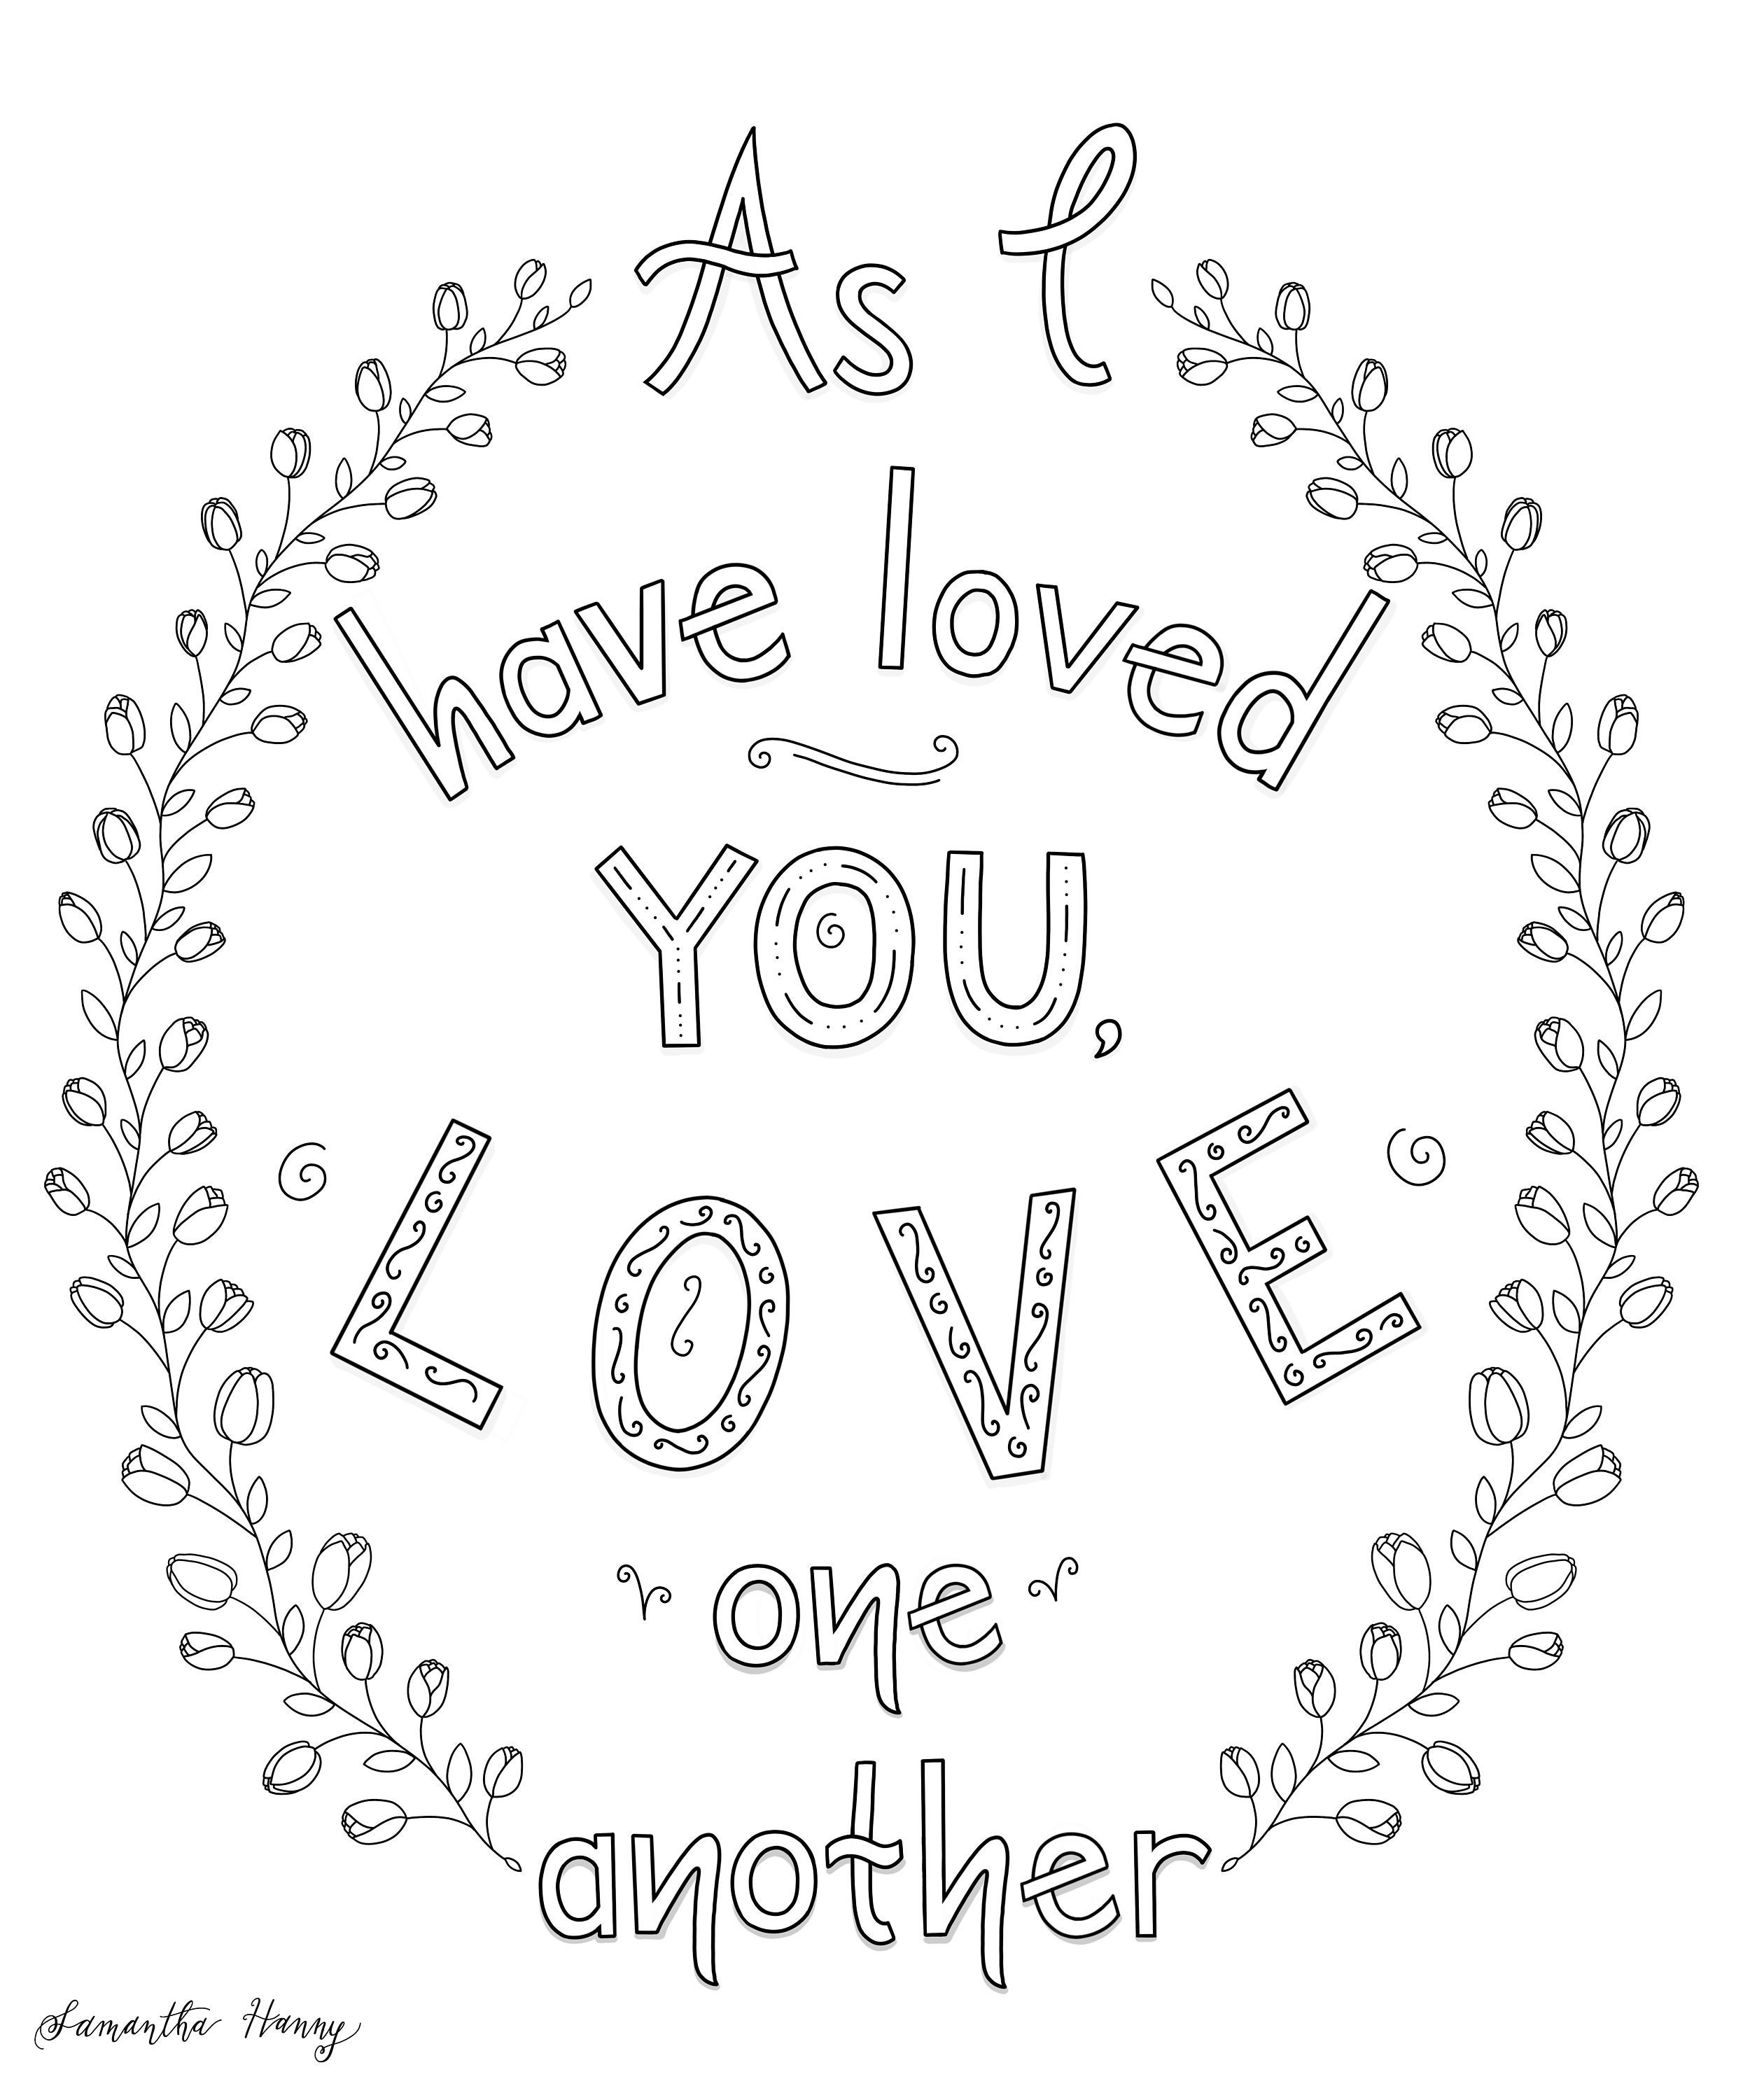 Printable Coloring Pages Love One Another | Etsy